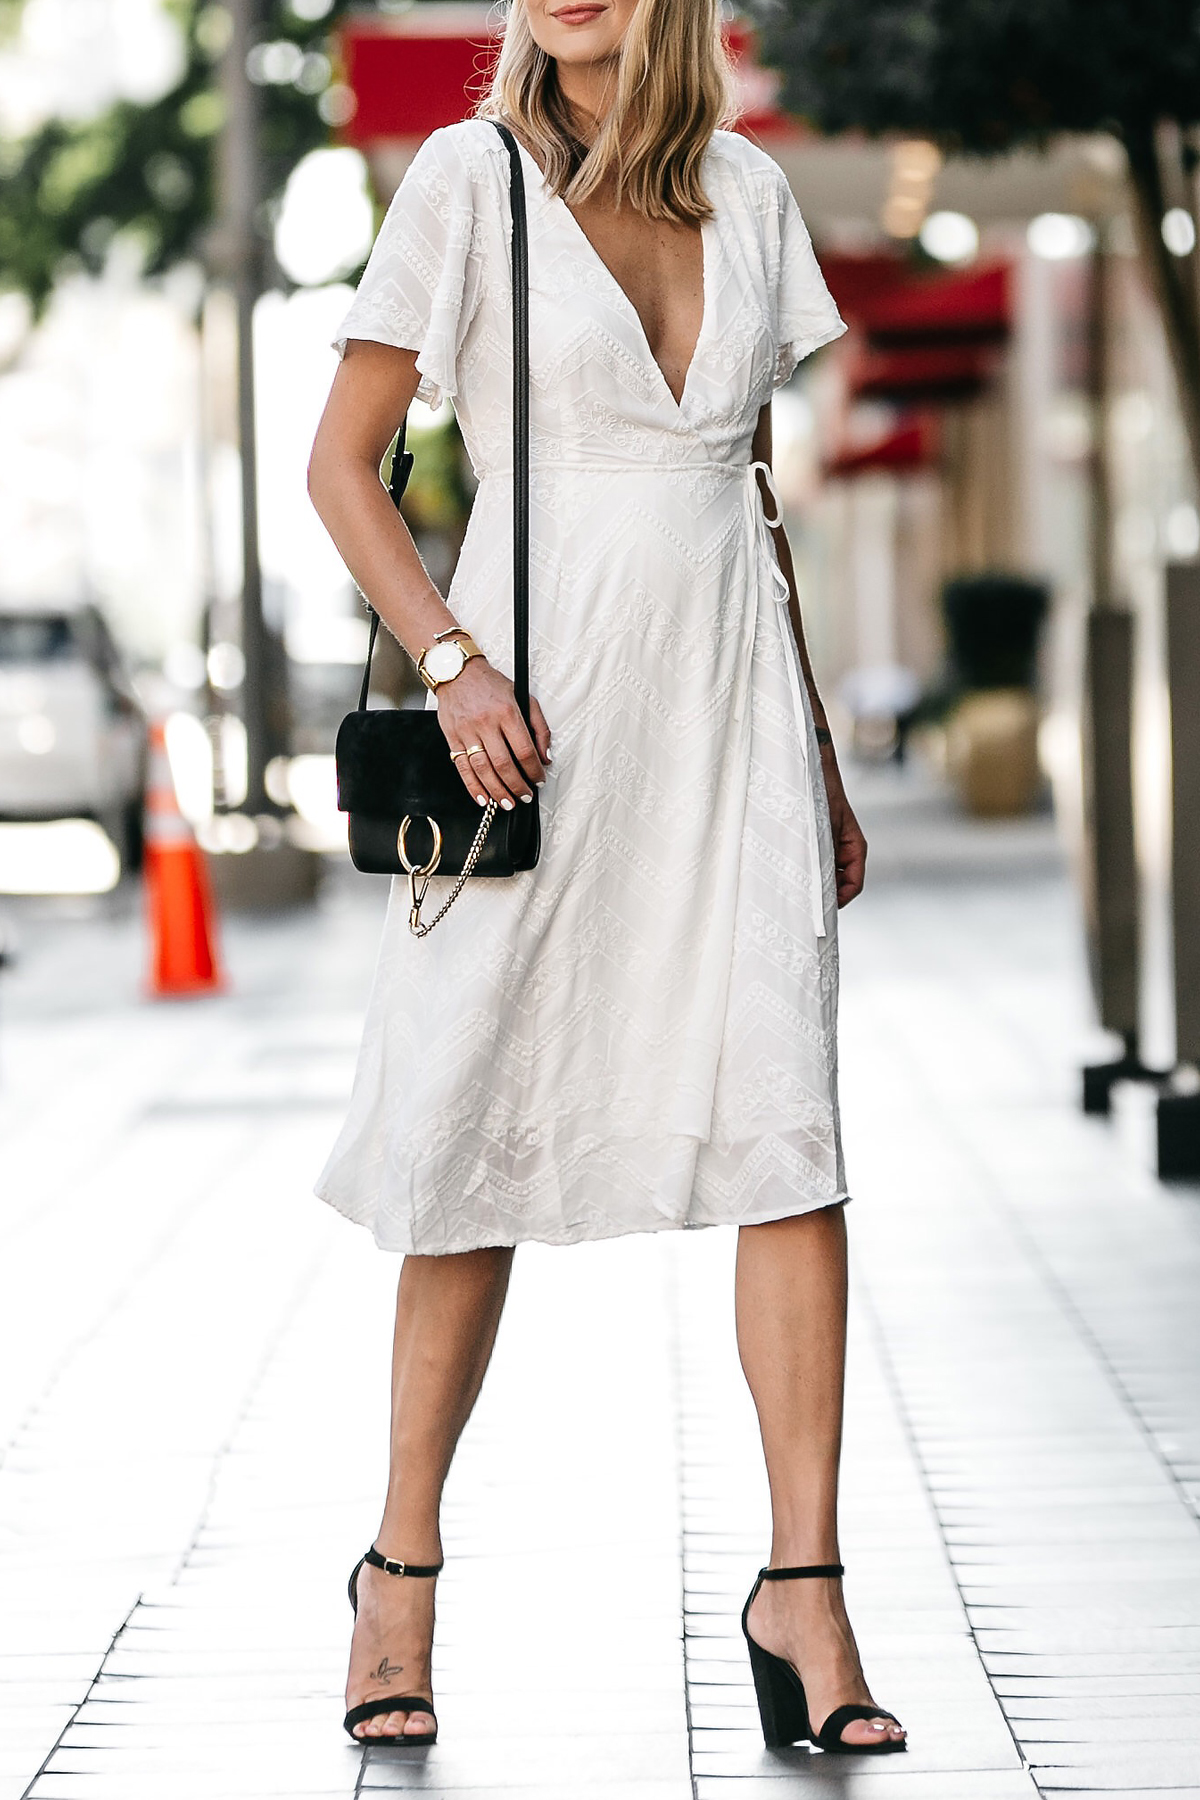 Blonde Woman Wearing Nordstrom Embroidered White Wrap Dress Chloe Faye Handbag Black Ankle Strap Heeled Sandals Fashion Jackson Dallas Blogger Fashion Blogger